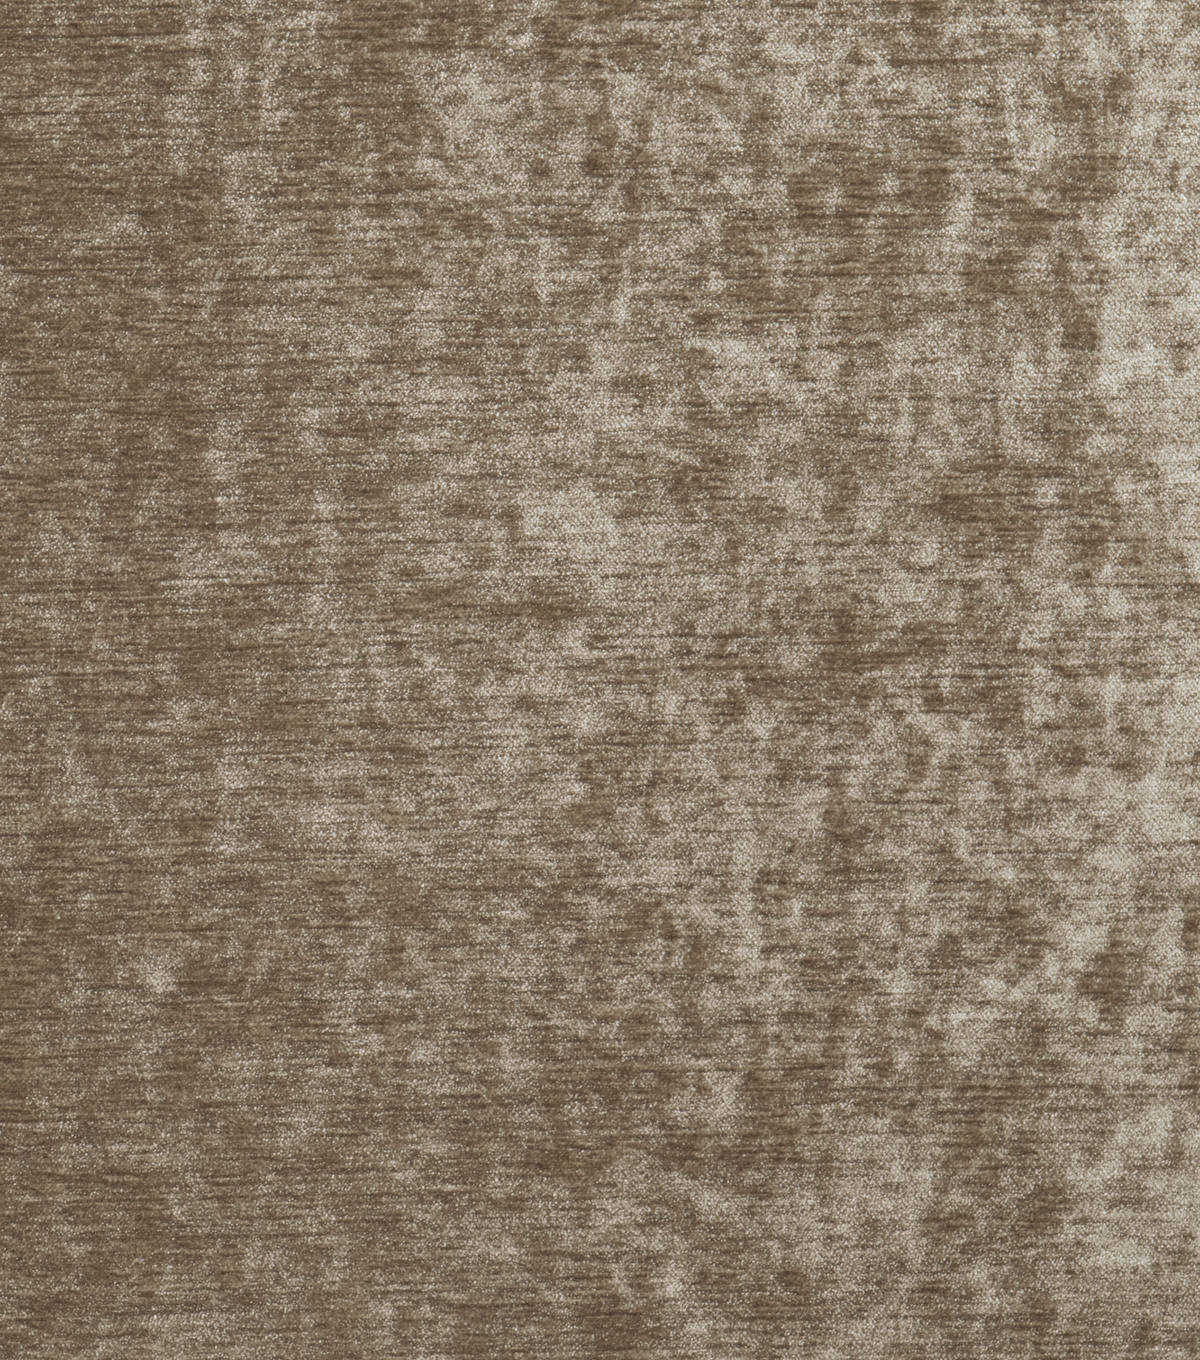 Home Decor 8x8 Fabric Swatch-Eaton Square Lamode Paloma